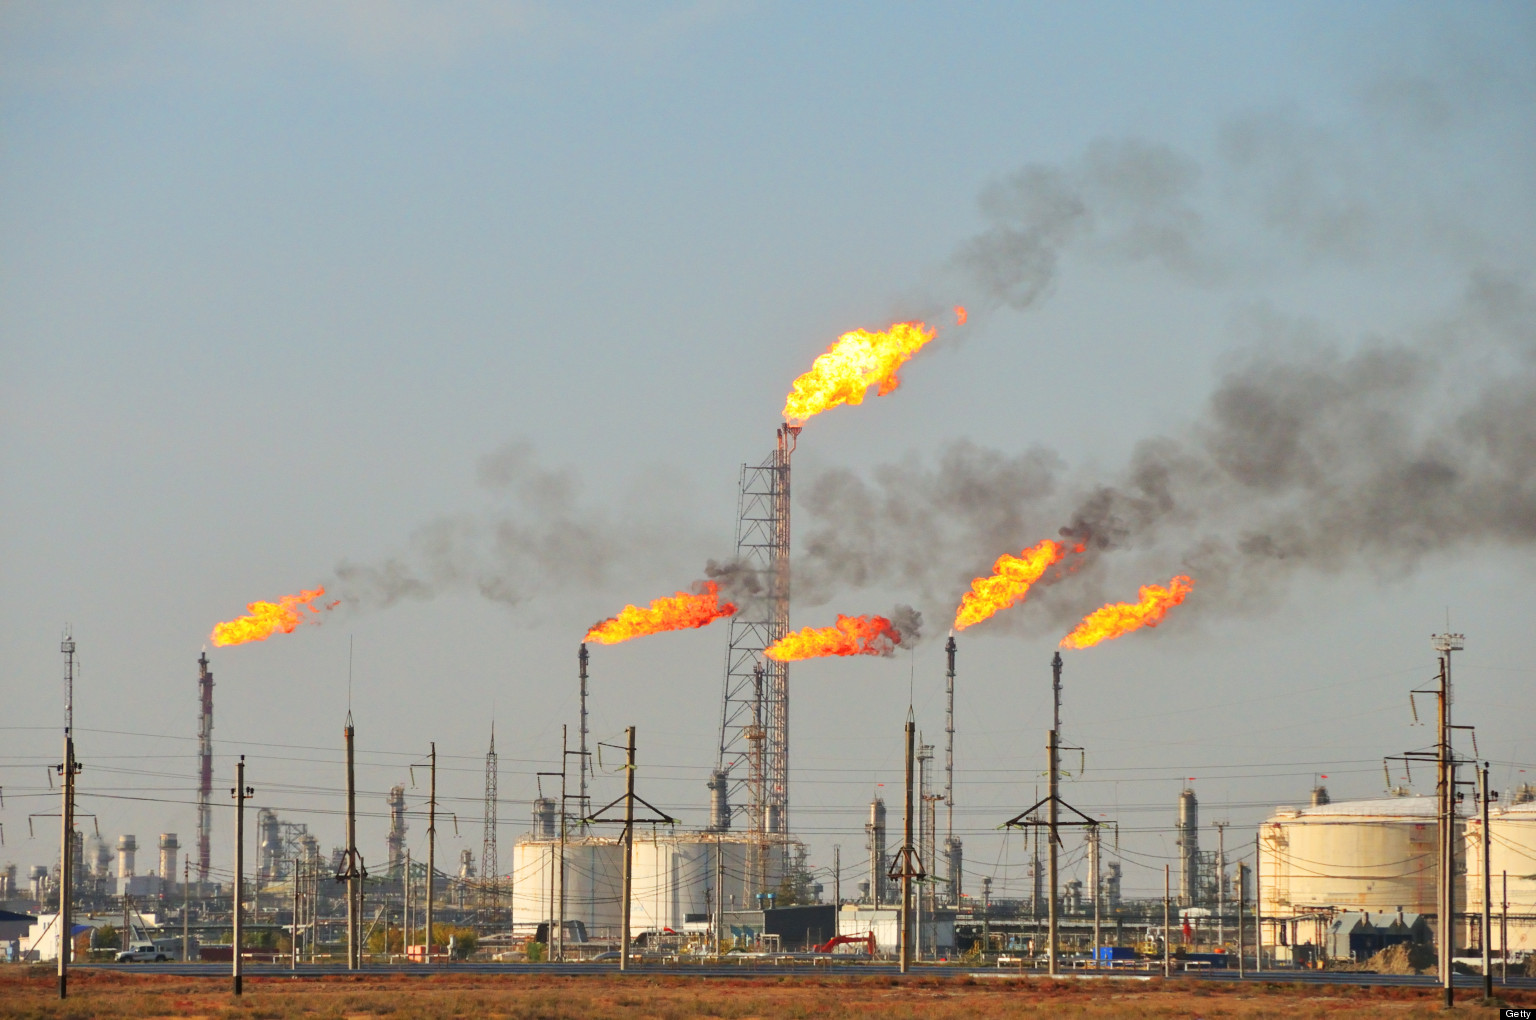 5 Questions For The World Bank On Ending Routine Gas